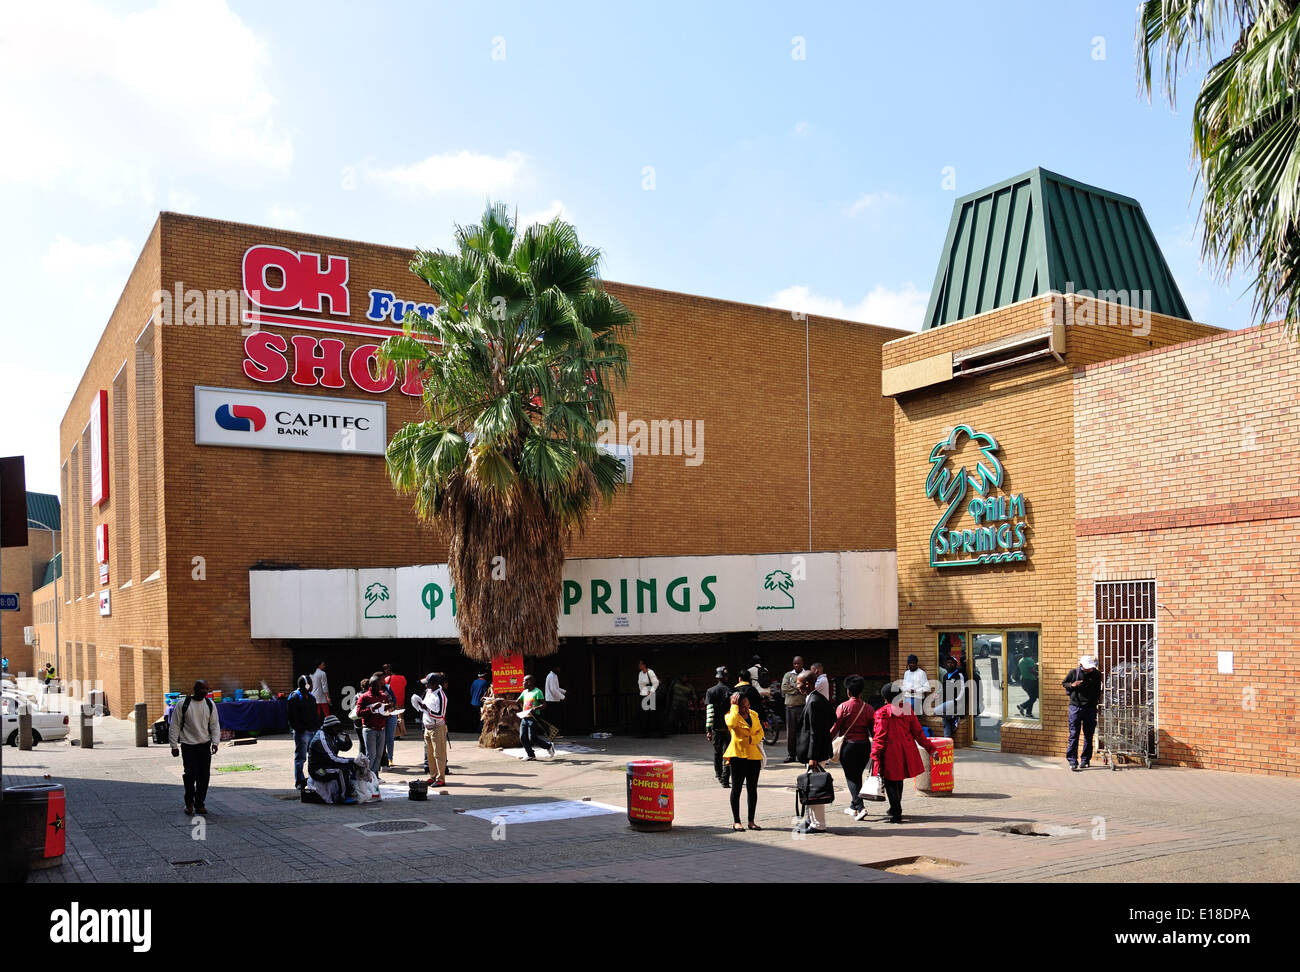 Entrance To Palm Springs Shopping Centre East Rand Gauteng Province Republic Of South Africa